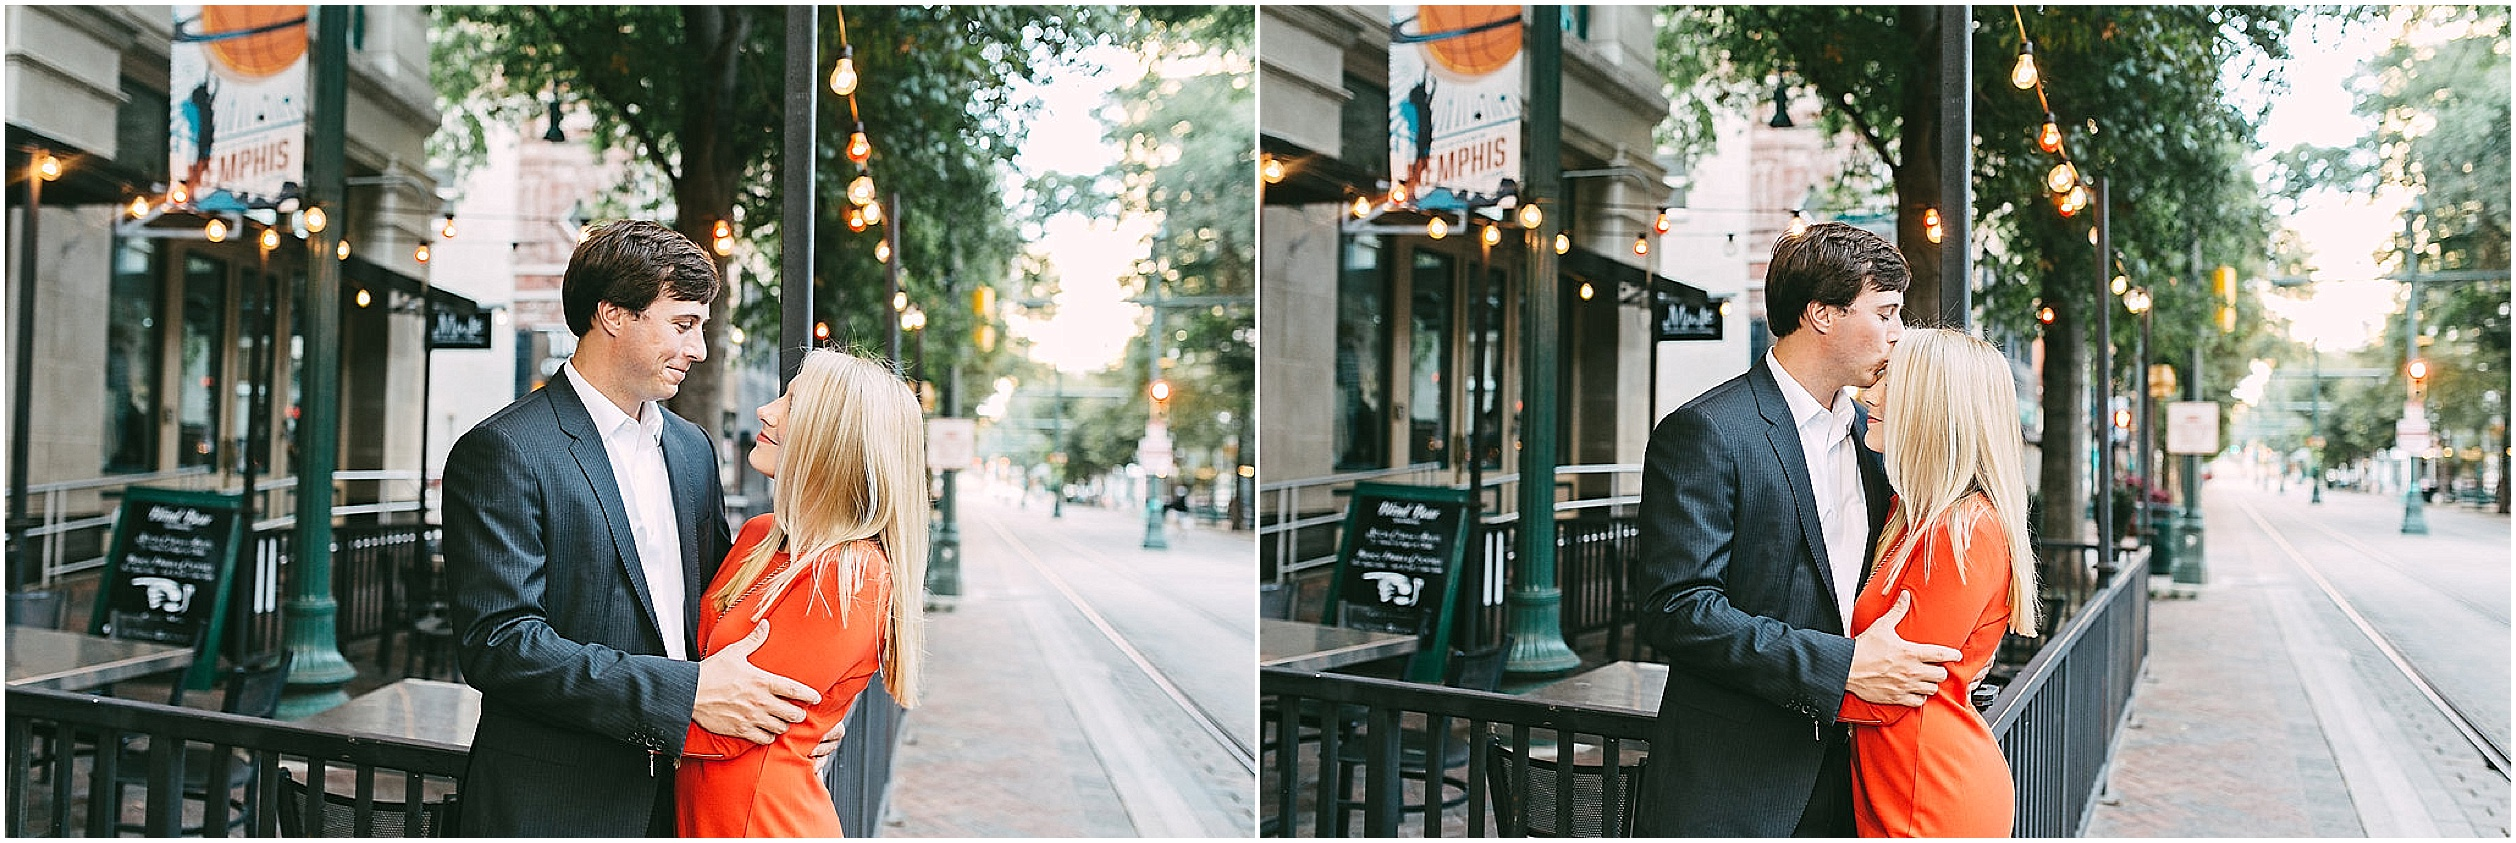 creative-memphis-wedding-photographer